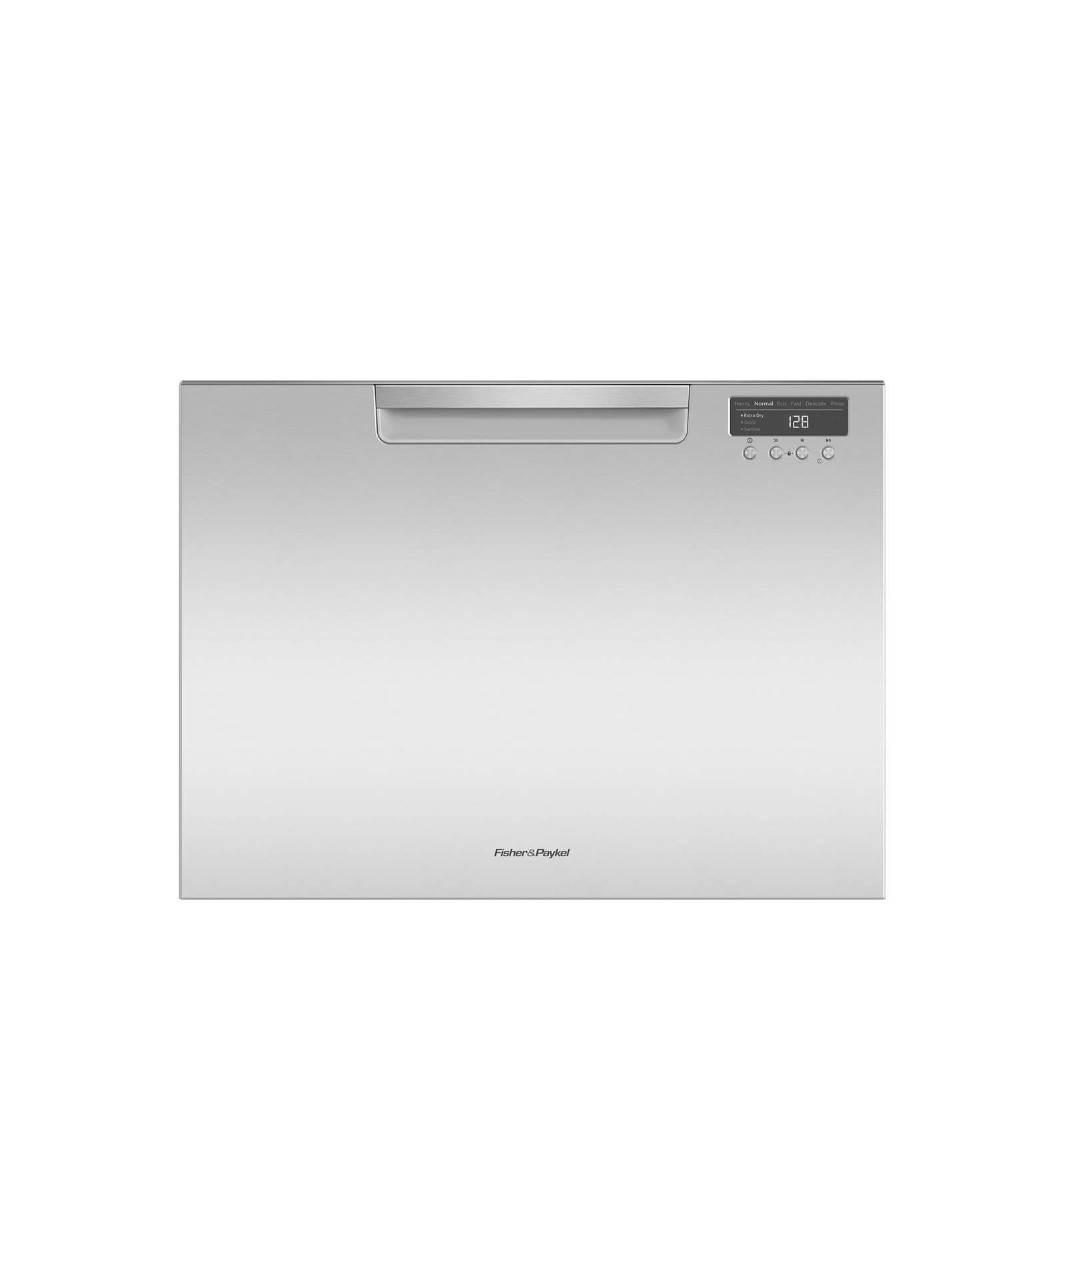 Tall Single DishDrawer dishwasher incl Sanitize, Extra Dry, full flex racking and water softener